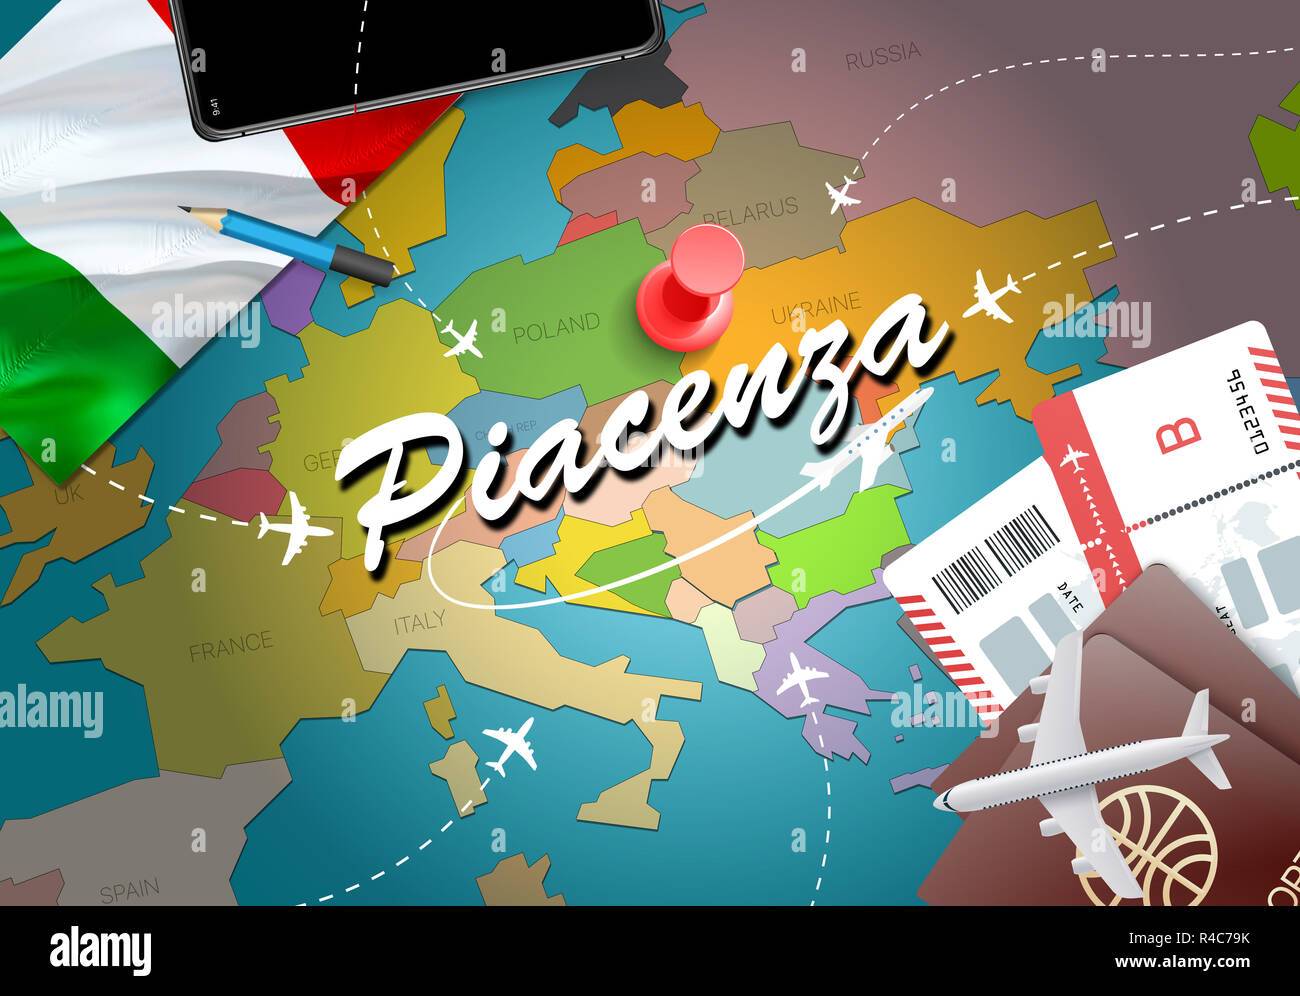 Piacenza City Travel And Tourism Destination Concept Italy Flag And